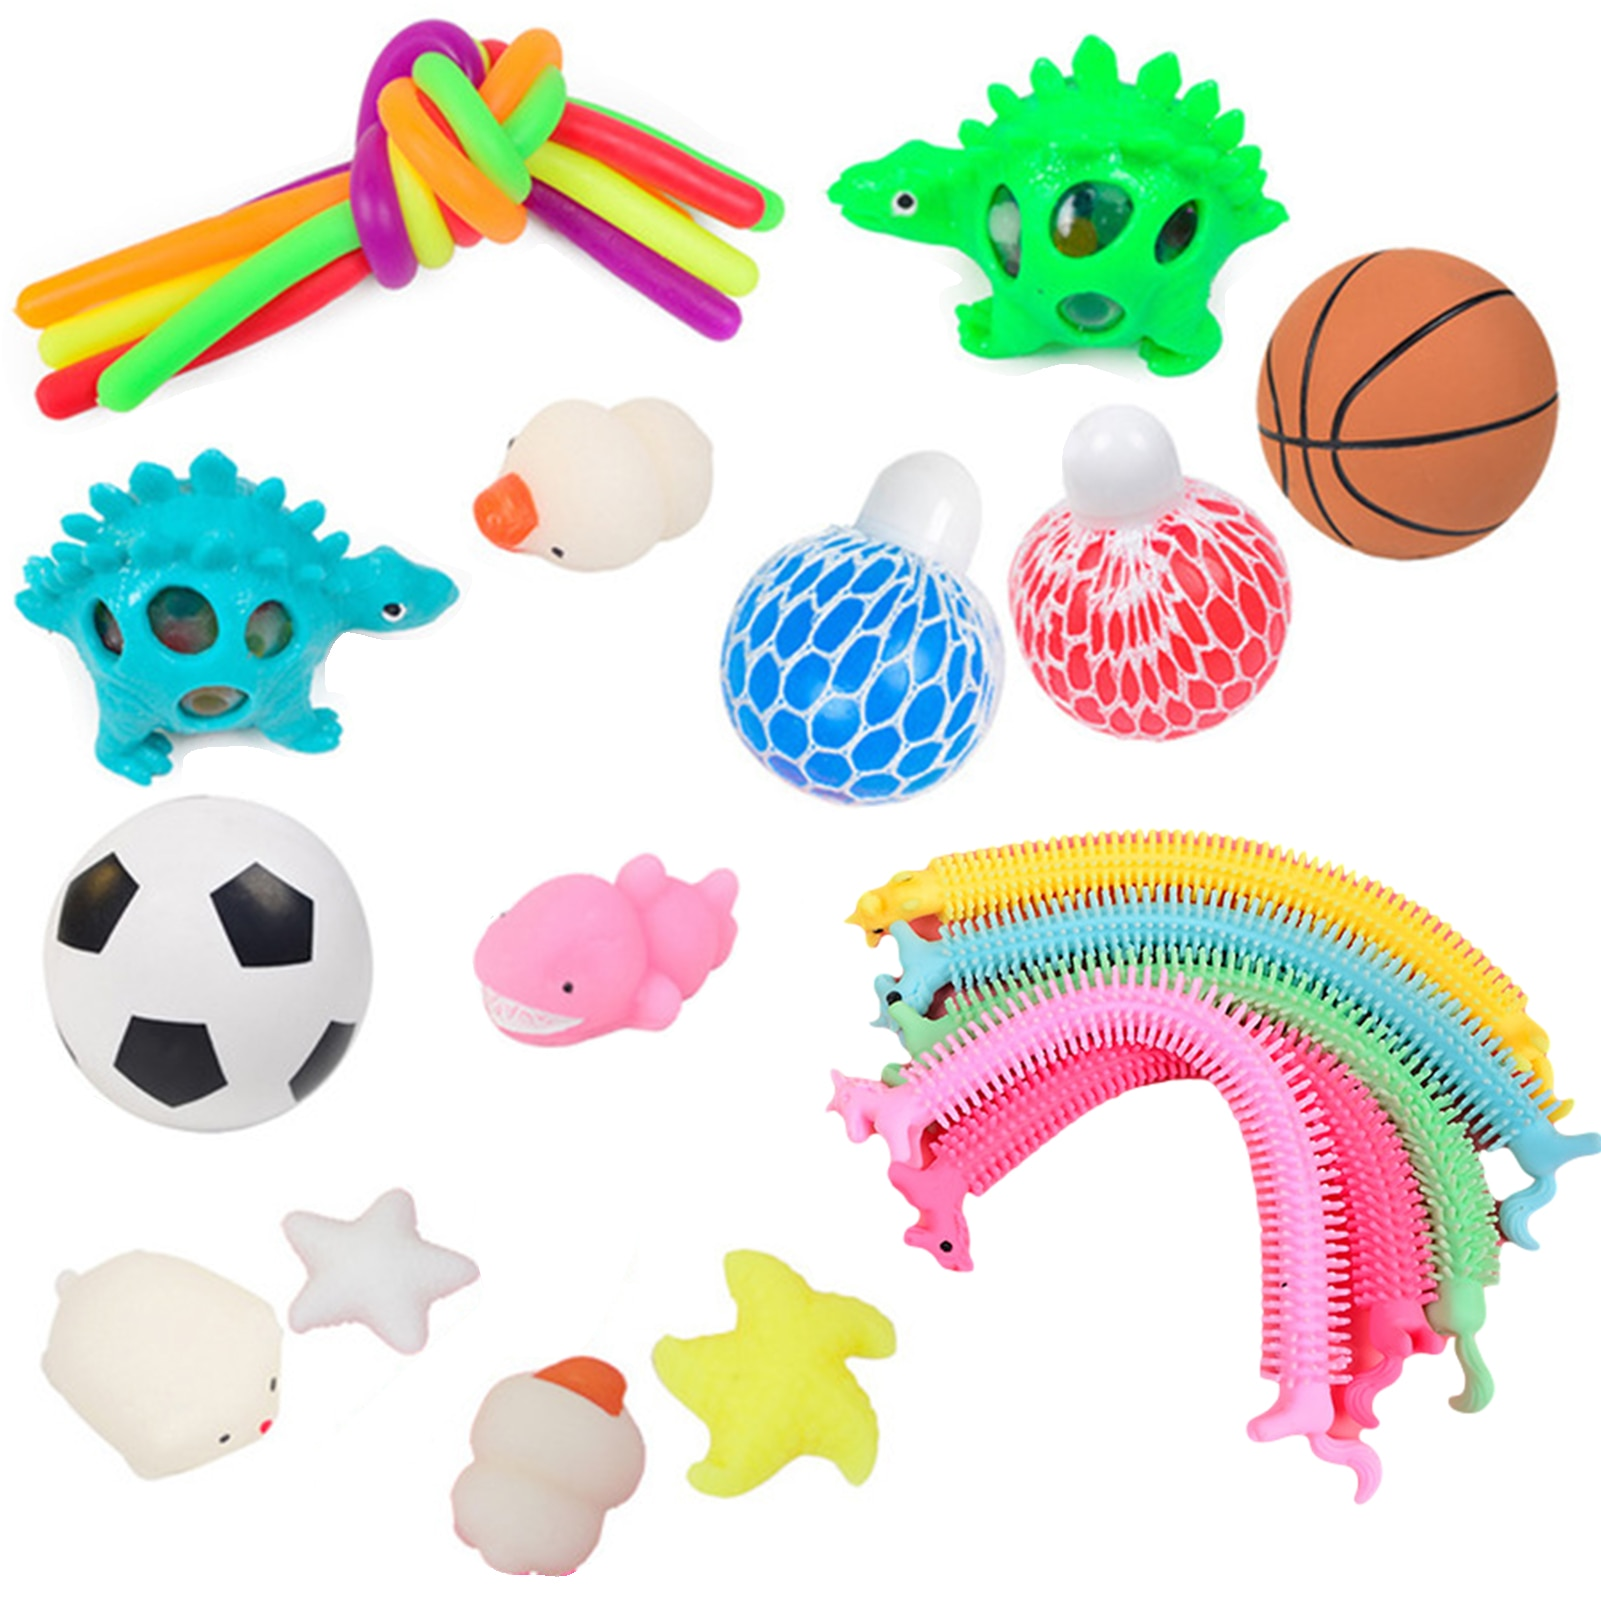 Fidget Sensory Toy Set Pressure Relief Squeeze Toys Pressure Ball Tube Stretchy String Anxiety Relief Autism Decompression Toys enlarge